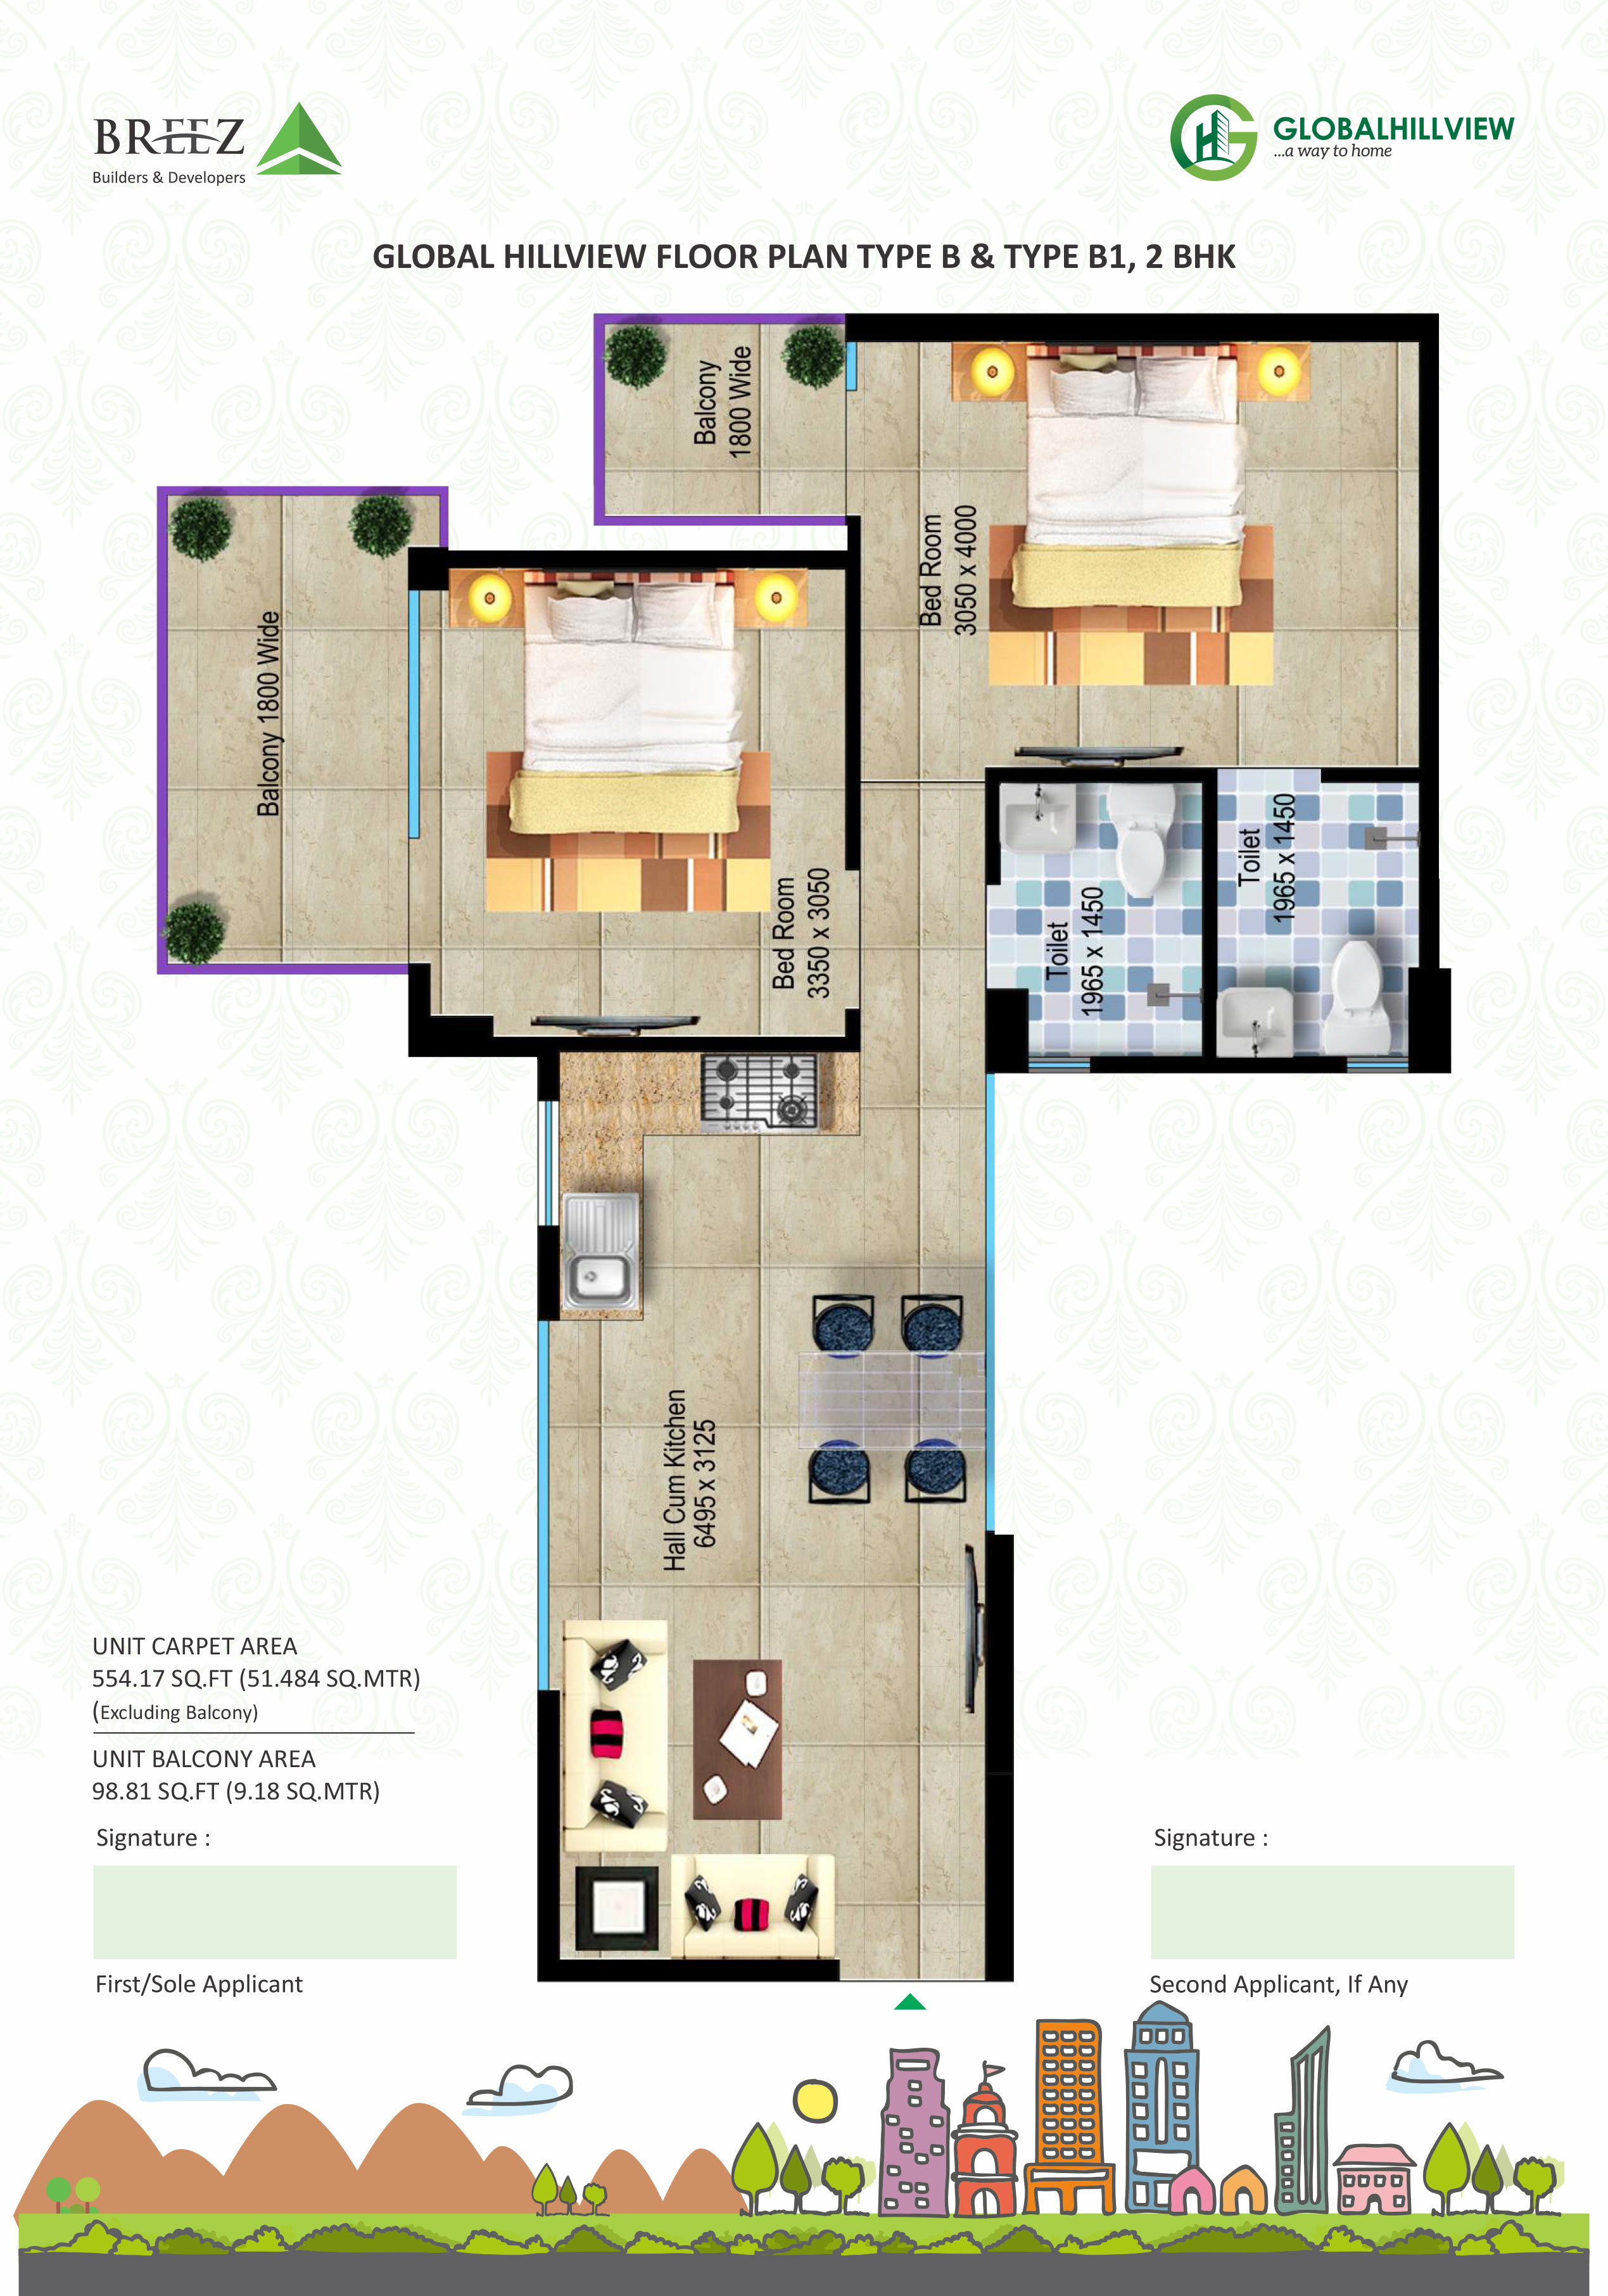 Breeze Global Hill View 2bhk Floor Plan